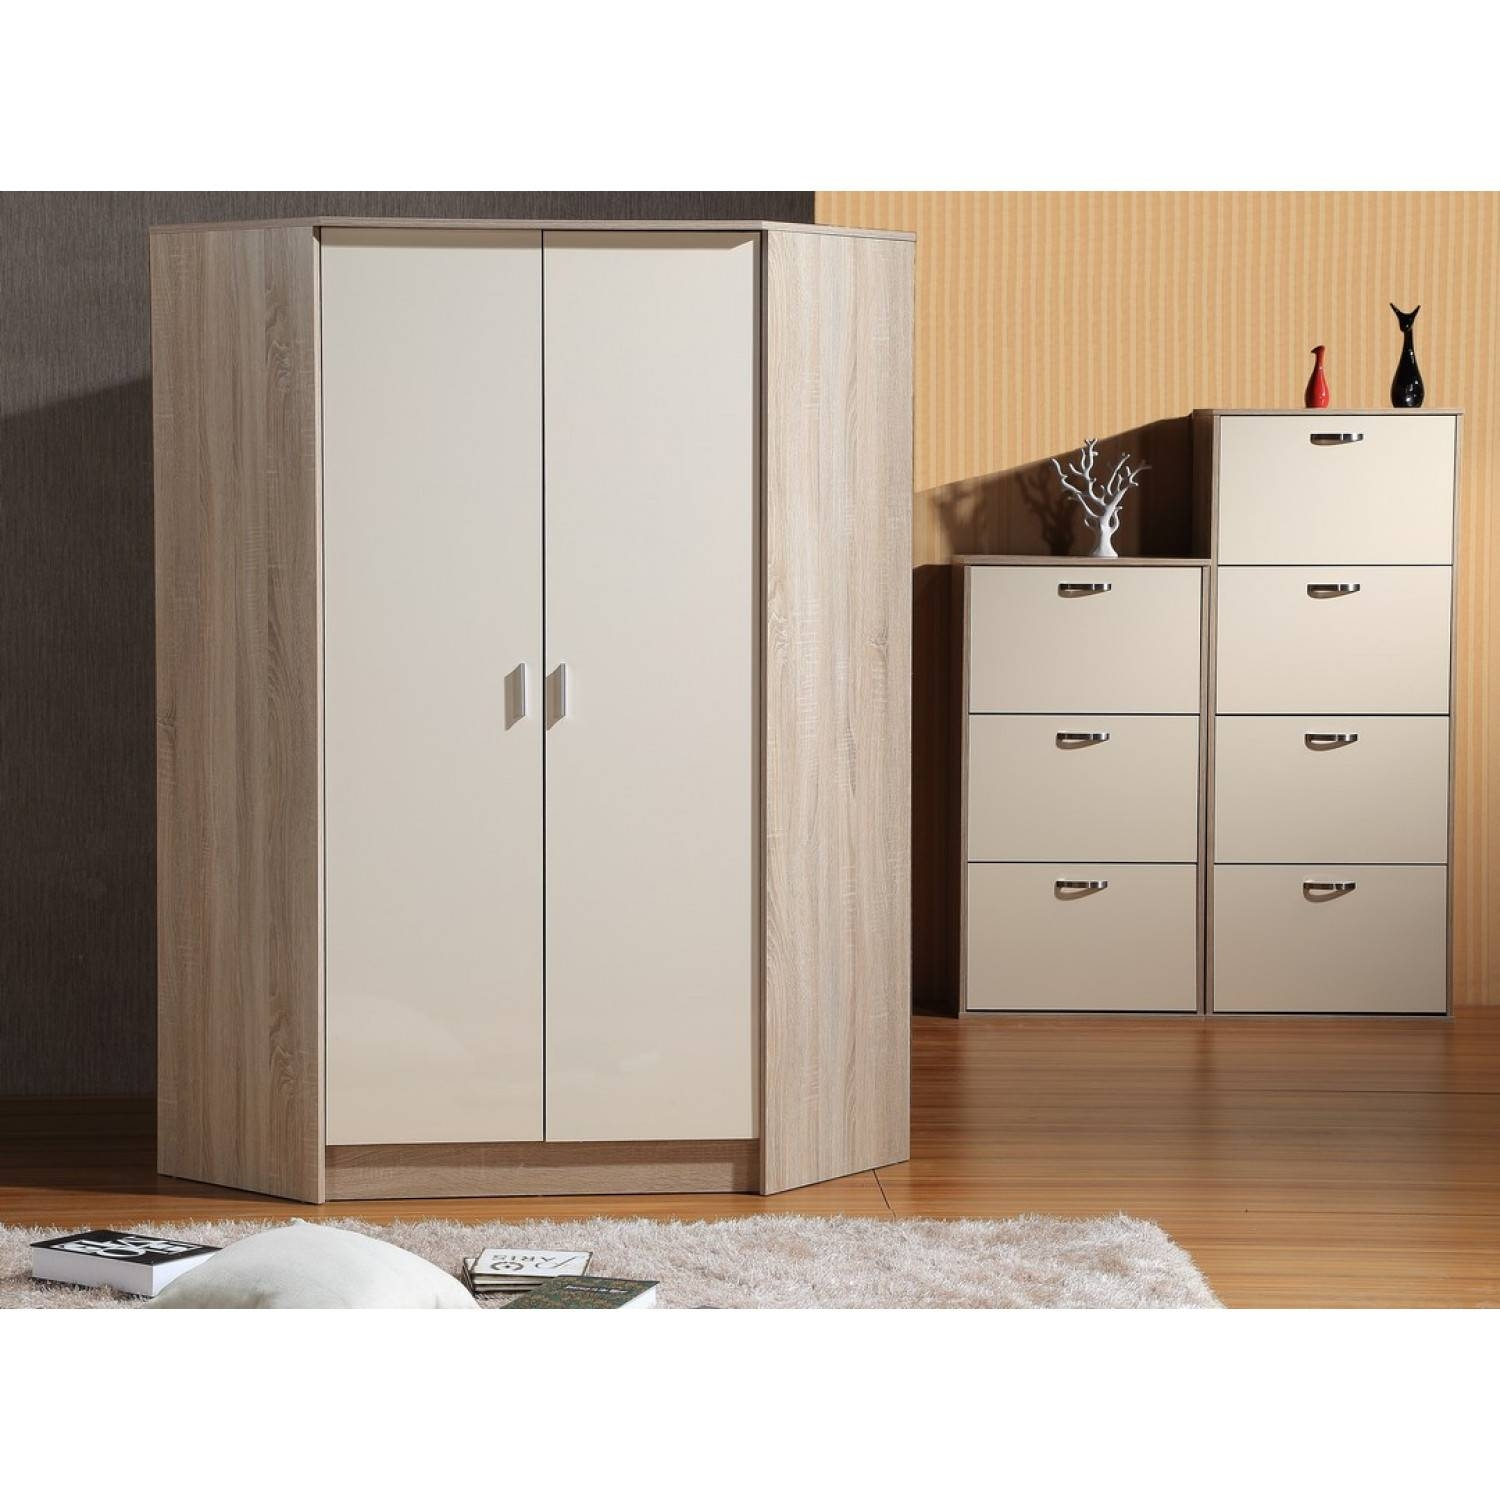 Kale High Gloss Two Door Corner Wardrobe In Cream On Oak for Cream Gloss Wardrobes (Image 10 of 15)